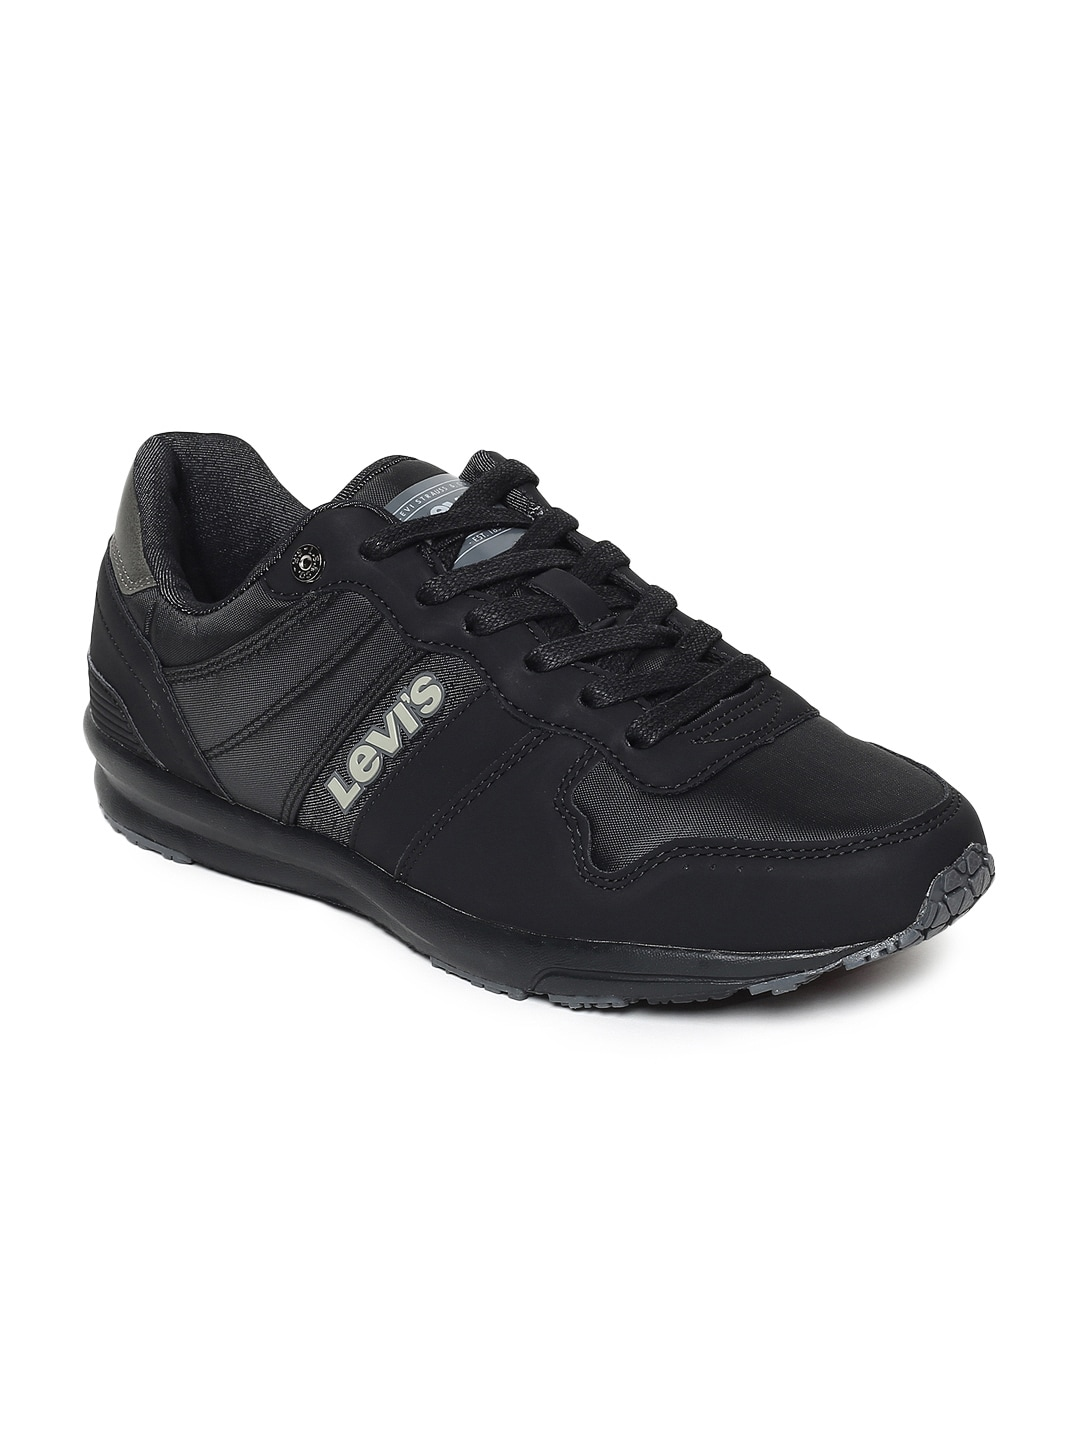 9ccd87e010421 Levis Casual Shoes - Buy Levis Casual Shoes Online - Myntra